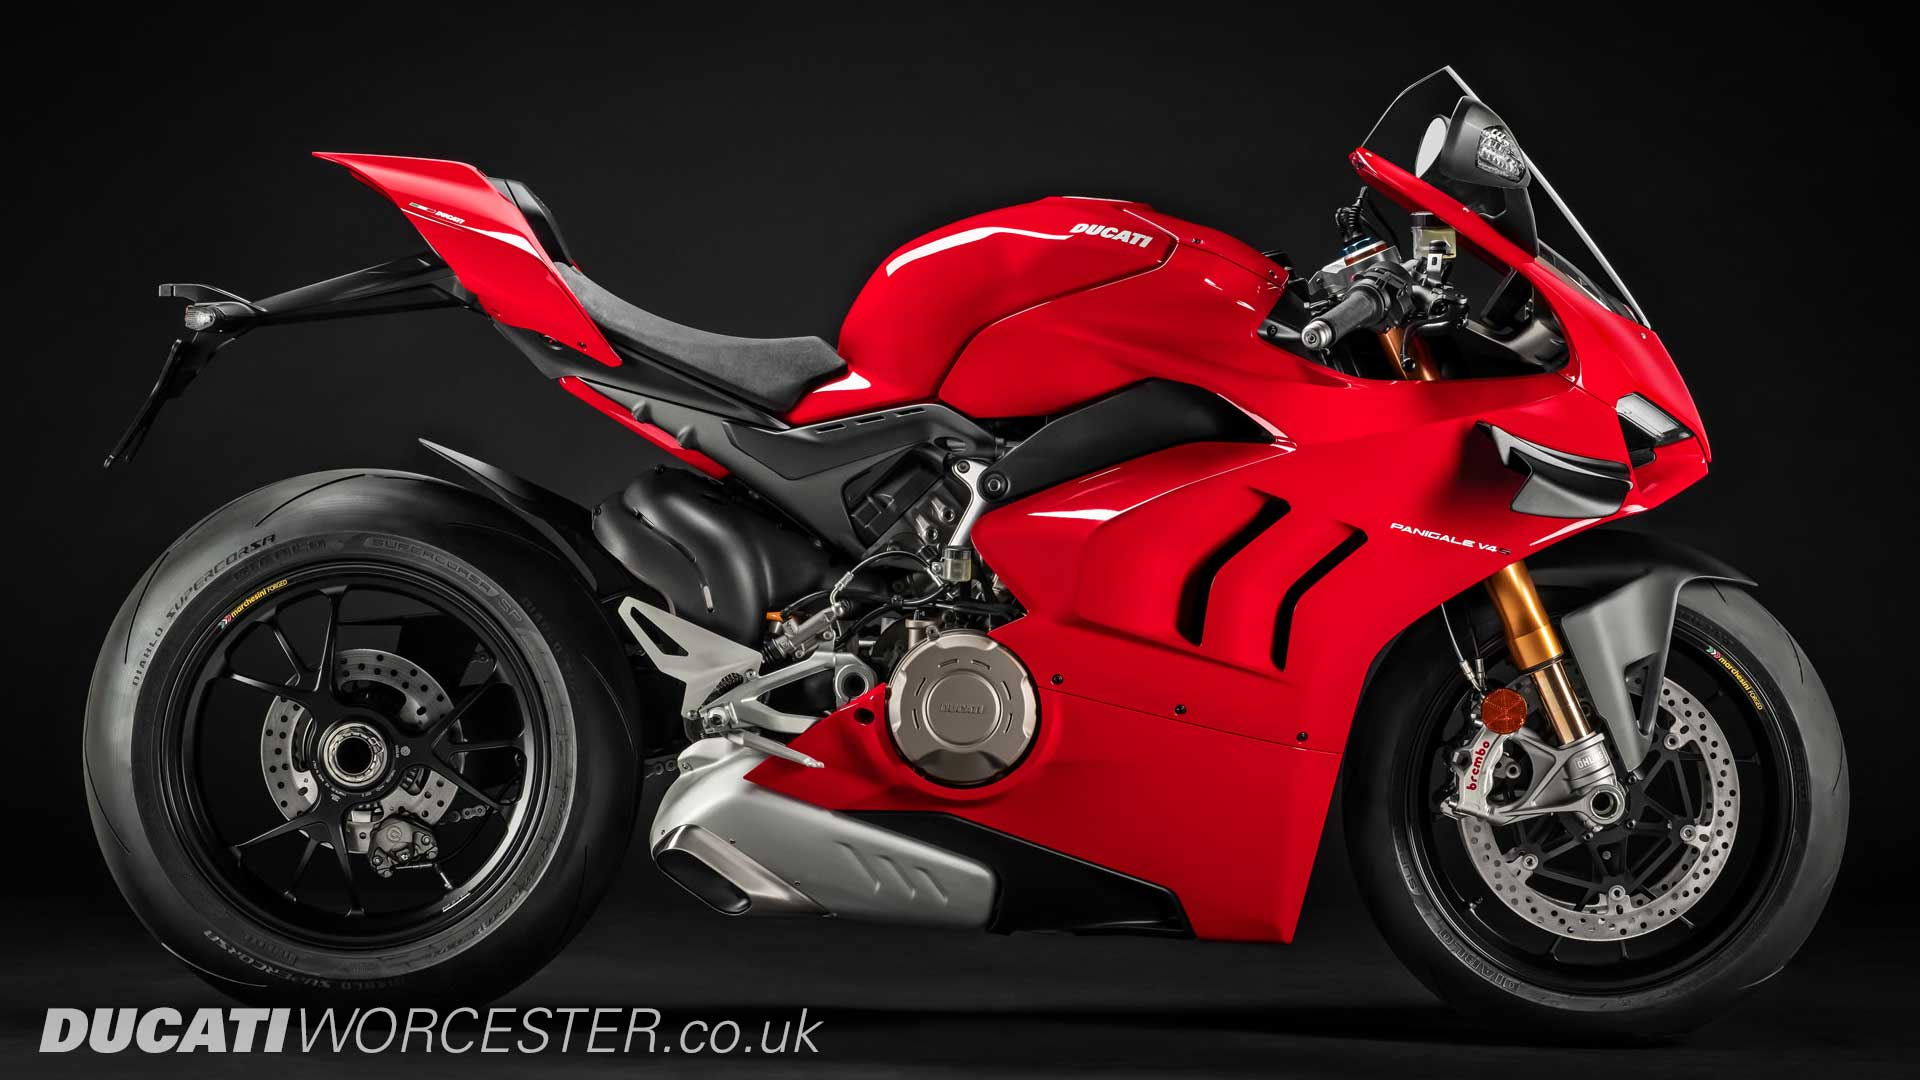 2020 Ducati Panigale V4S for sale at Ducati Worcester, Worcestershire, Scotland